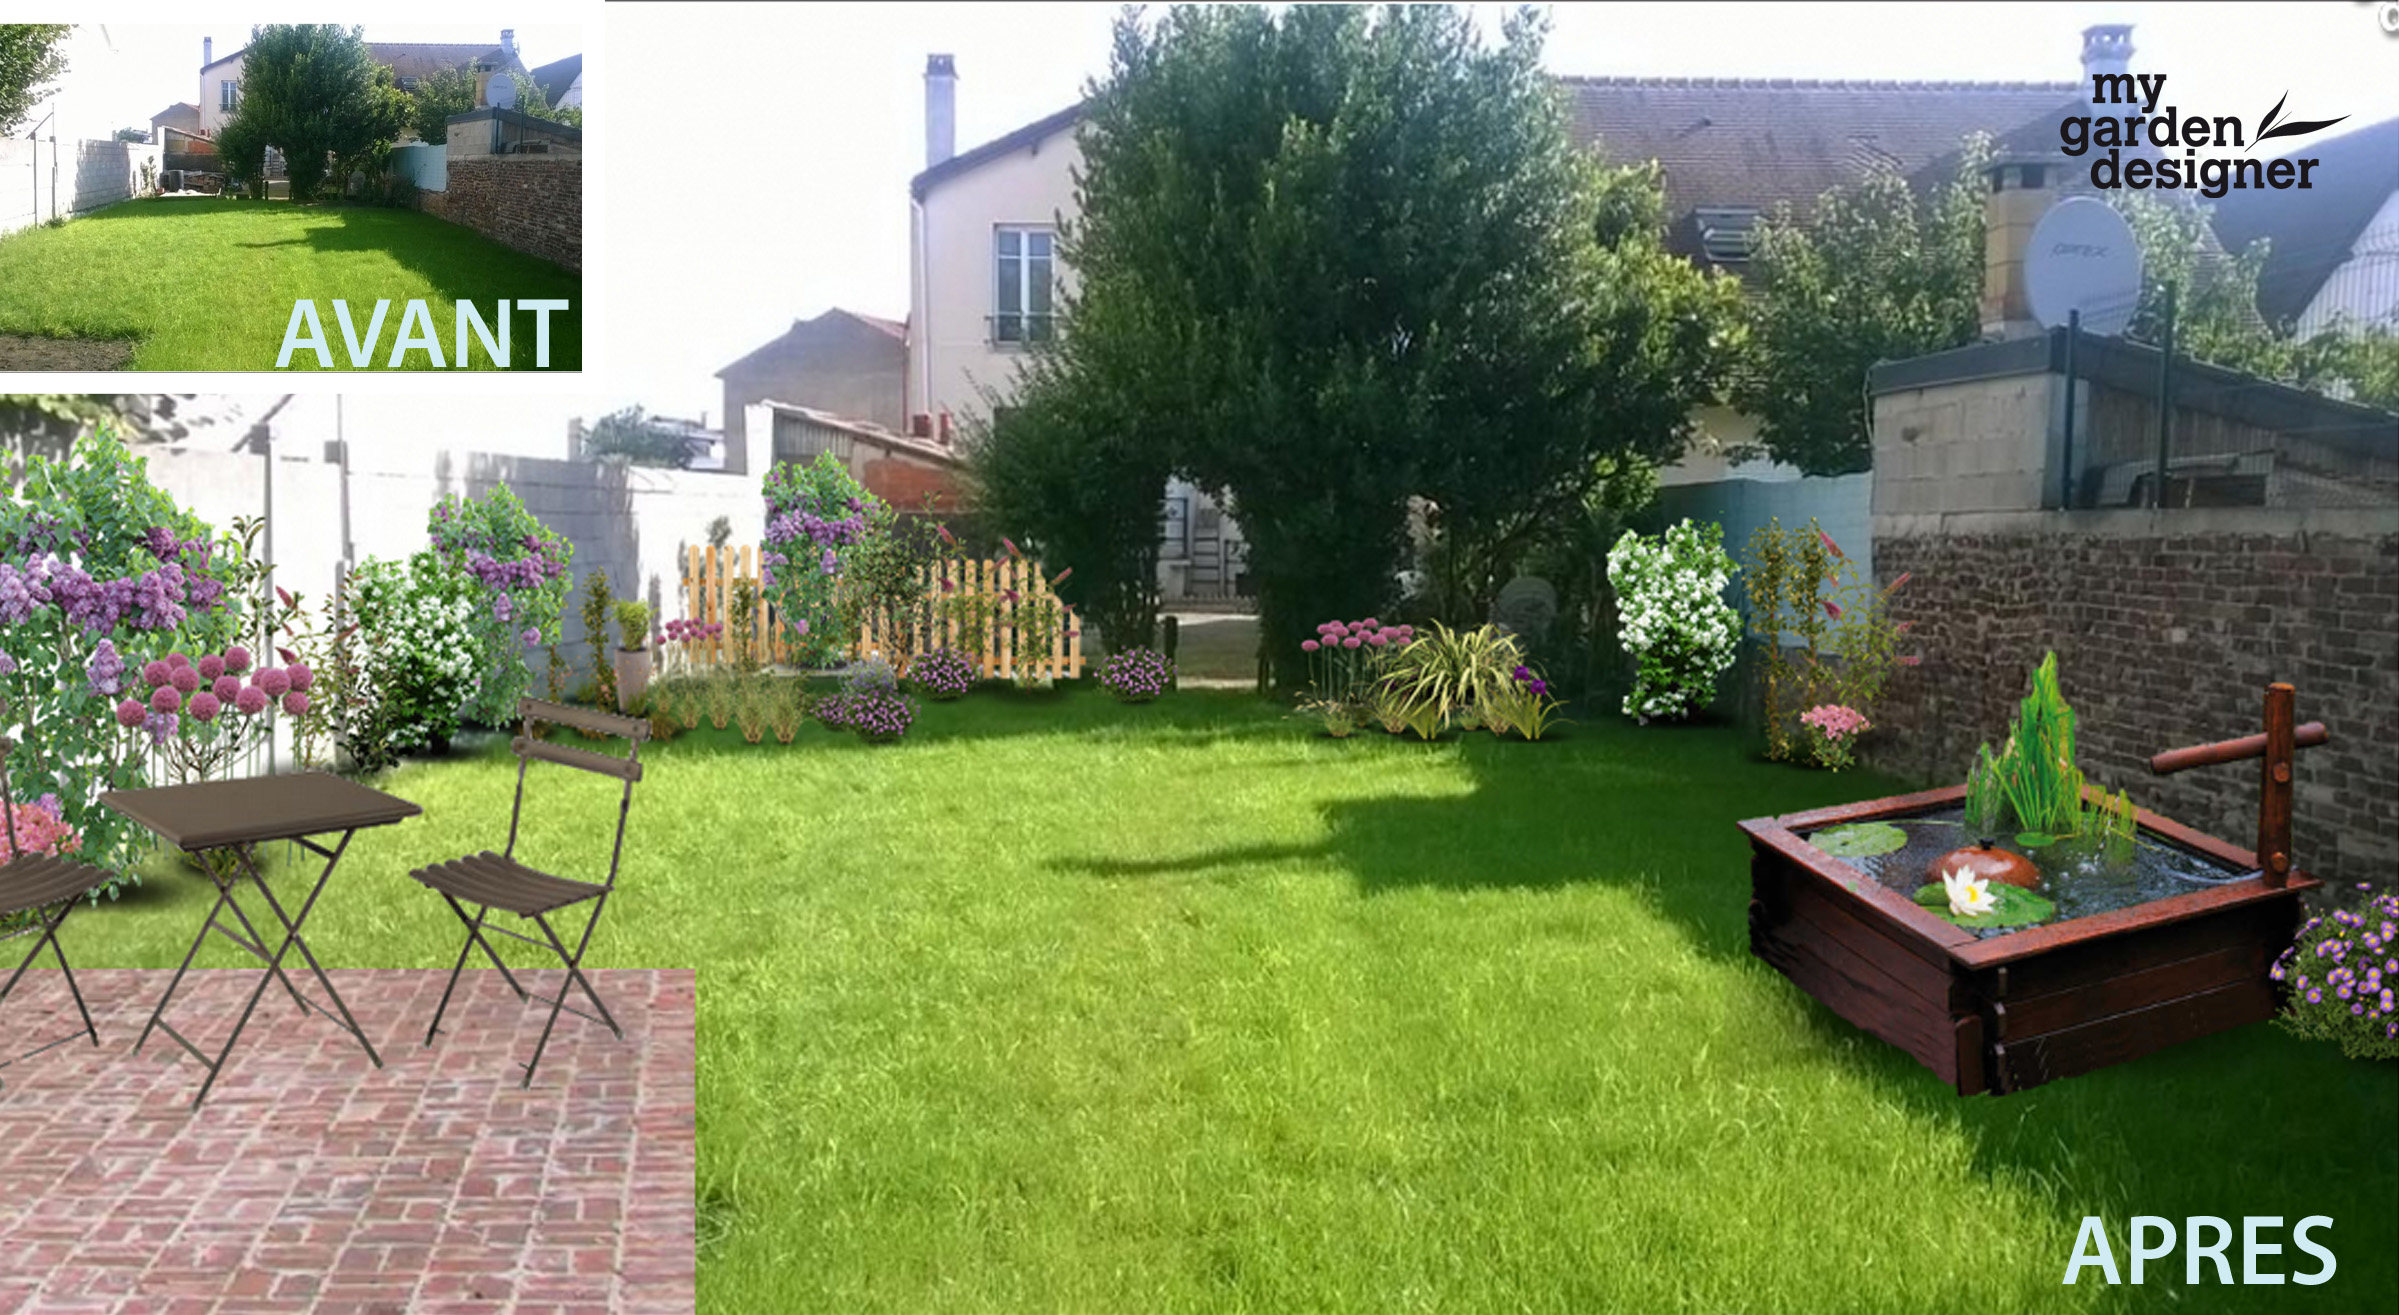 Am nager un jardin carr en ile de france monjardin - Amenagement de jardin ...